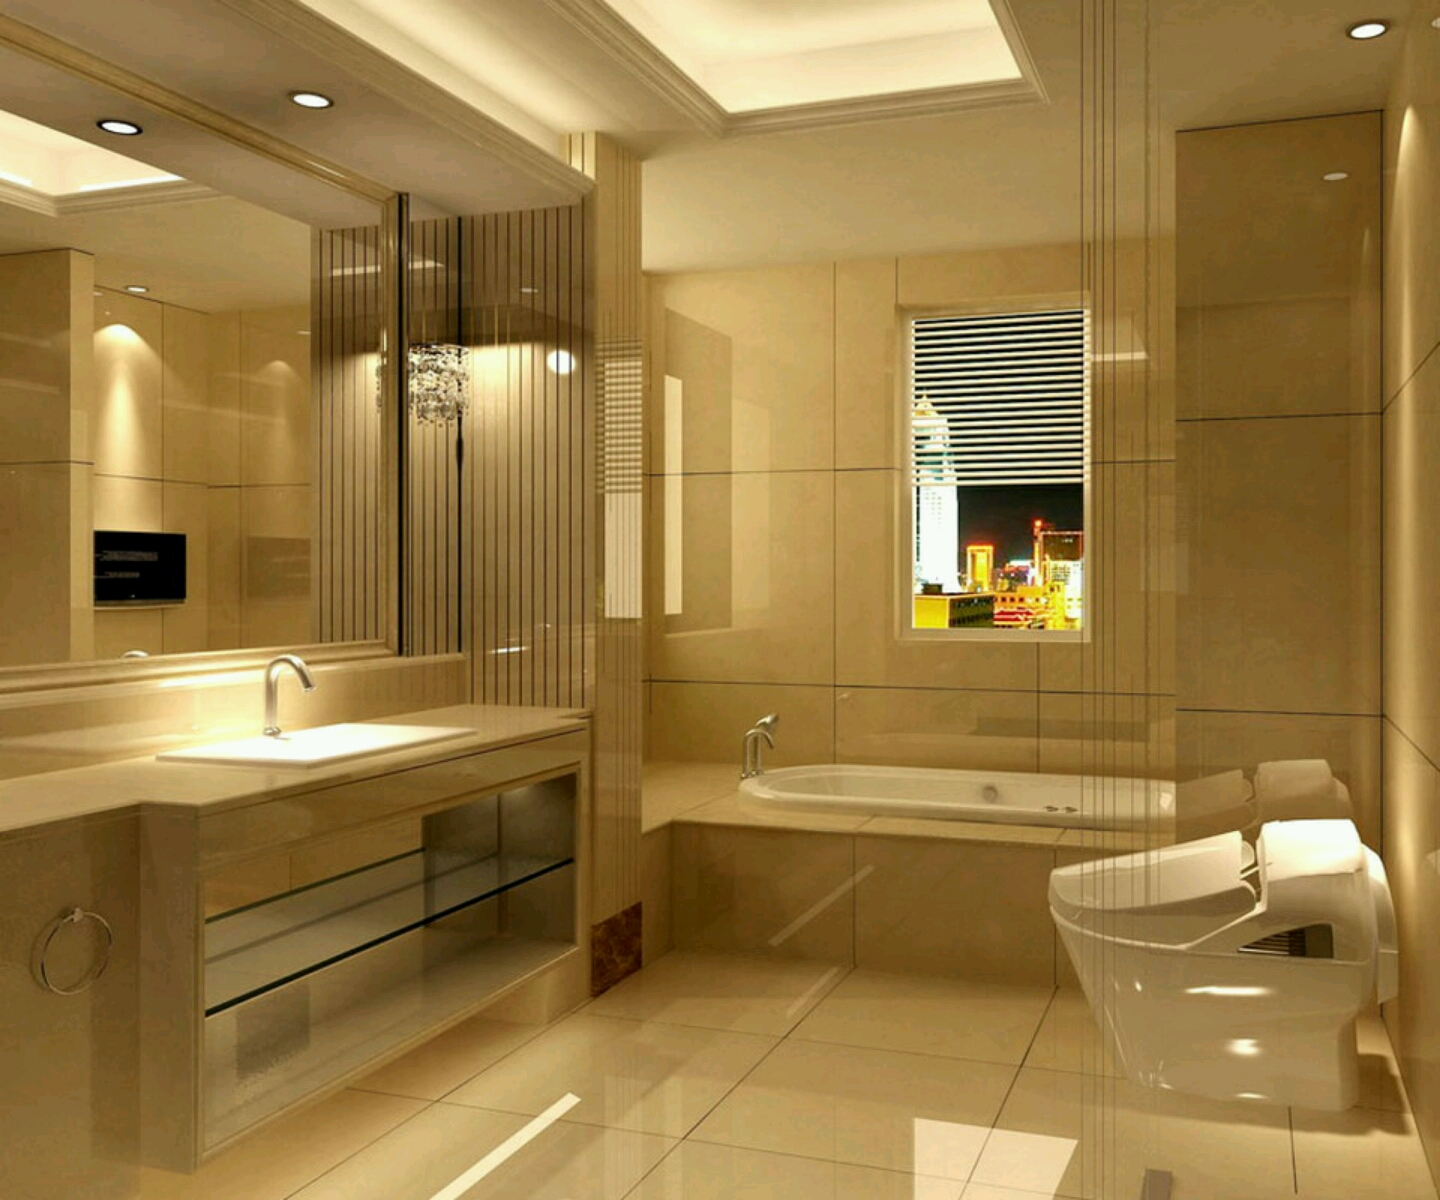 Modern bathrooms setting ideas furniture gallery for Modern shower design